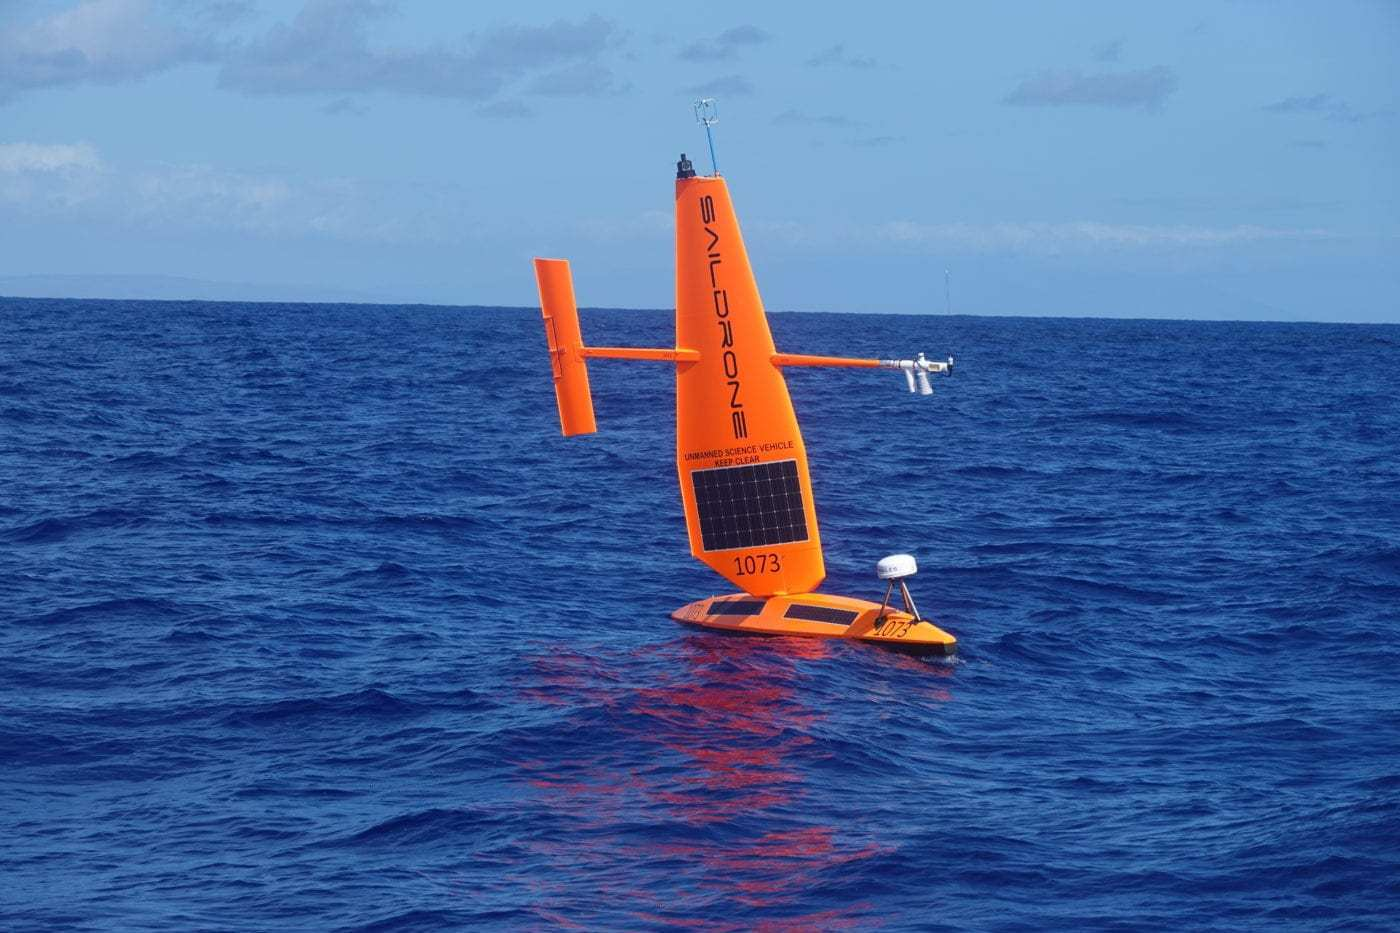 A Coast Guard Saildrone prototype unmanned surface vehicle performs a test off Oahu, Hawaii, Oct. 20, 2020. The focus of the test was to explore how current and emerging technologies might be used to enhance maritime domain awareness in remote regions. (U.S. Coast Guard photo courtesy of The Coast Guard Research and Development Center)